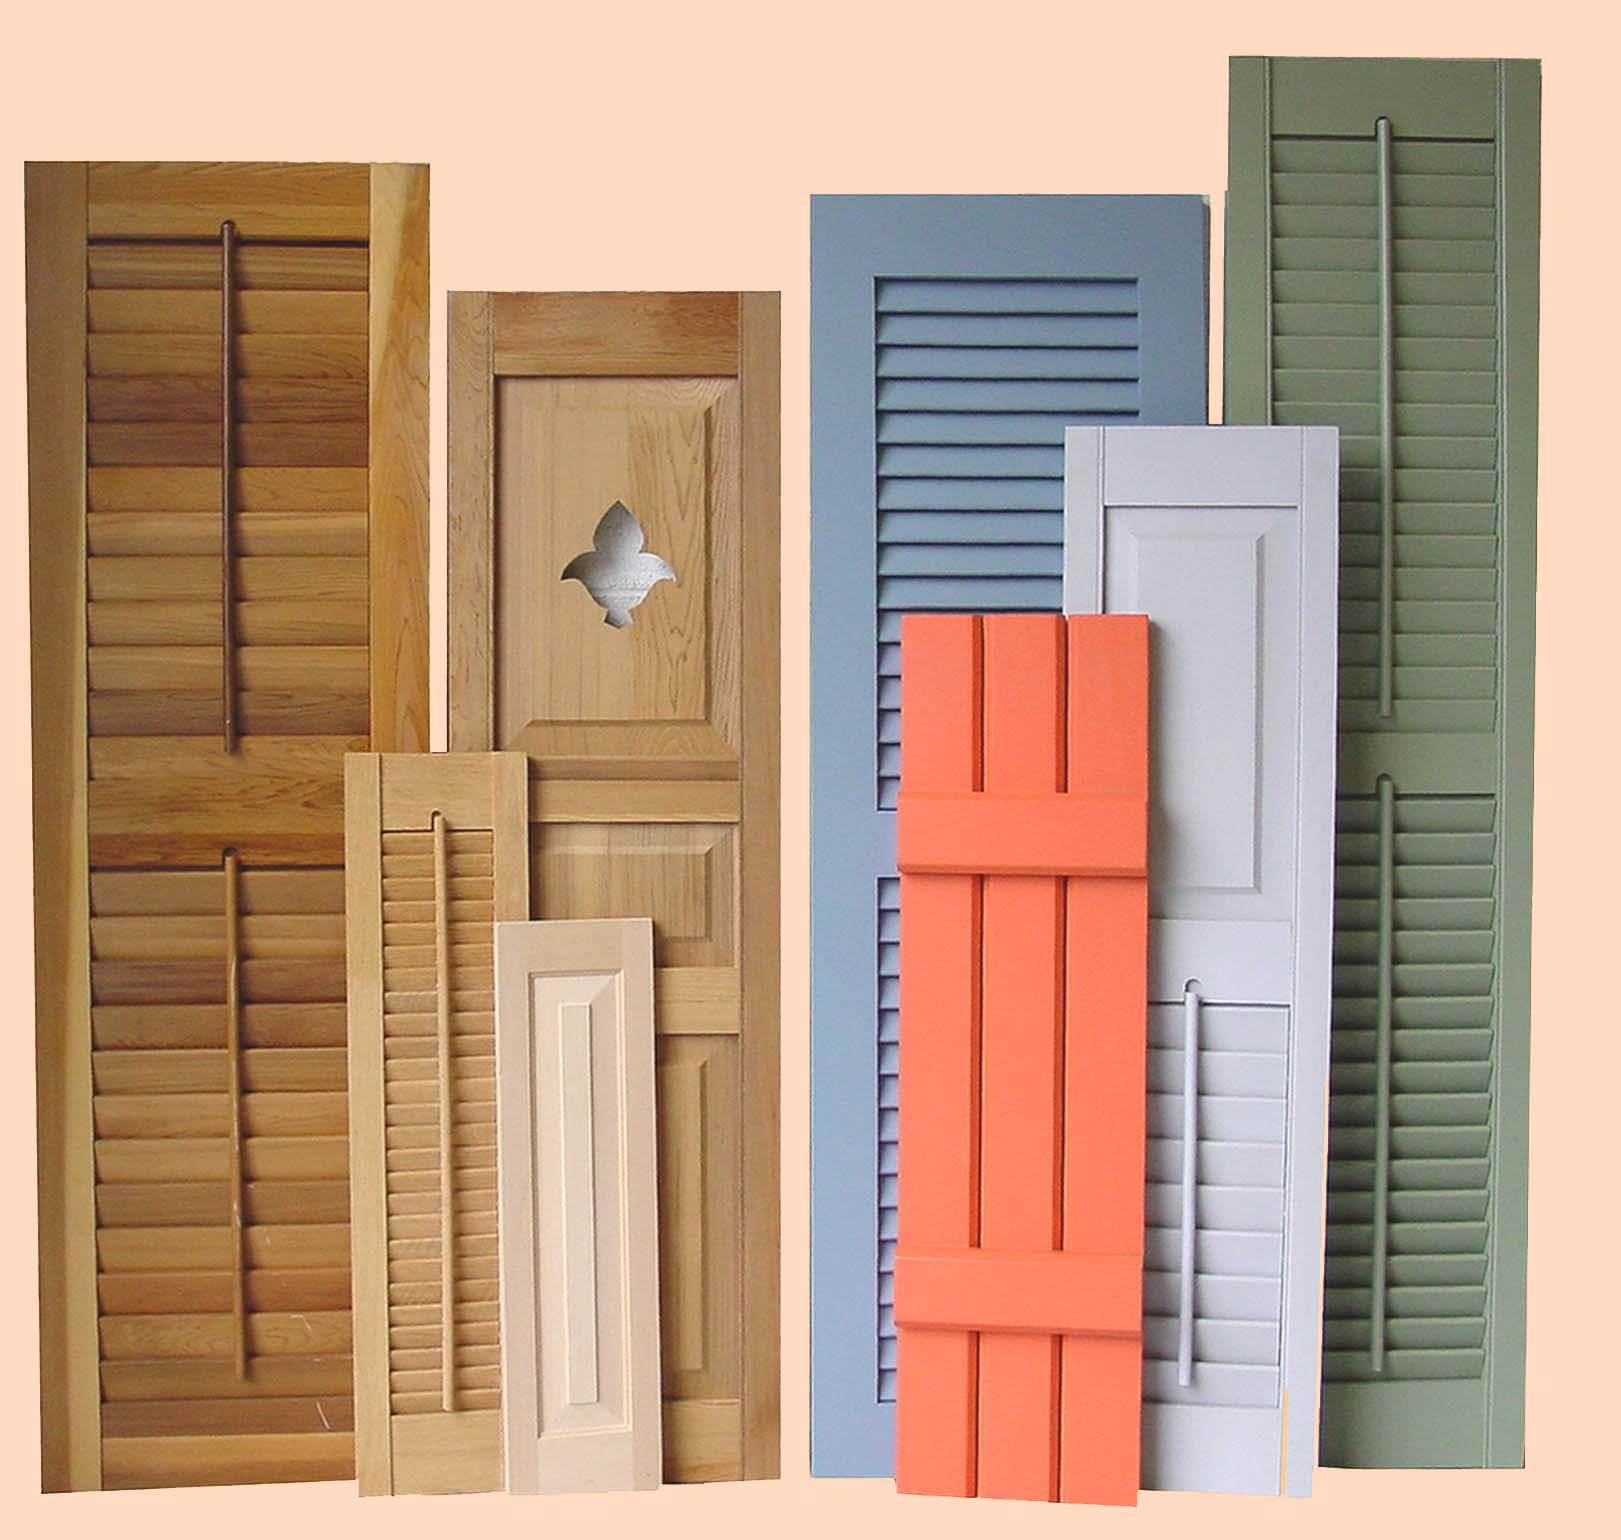 exterior wood shutters shuttercraft custom wood shutters madison ct JCKTFYM